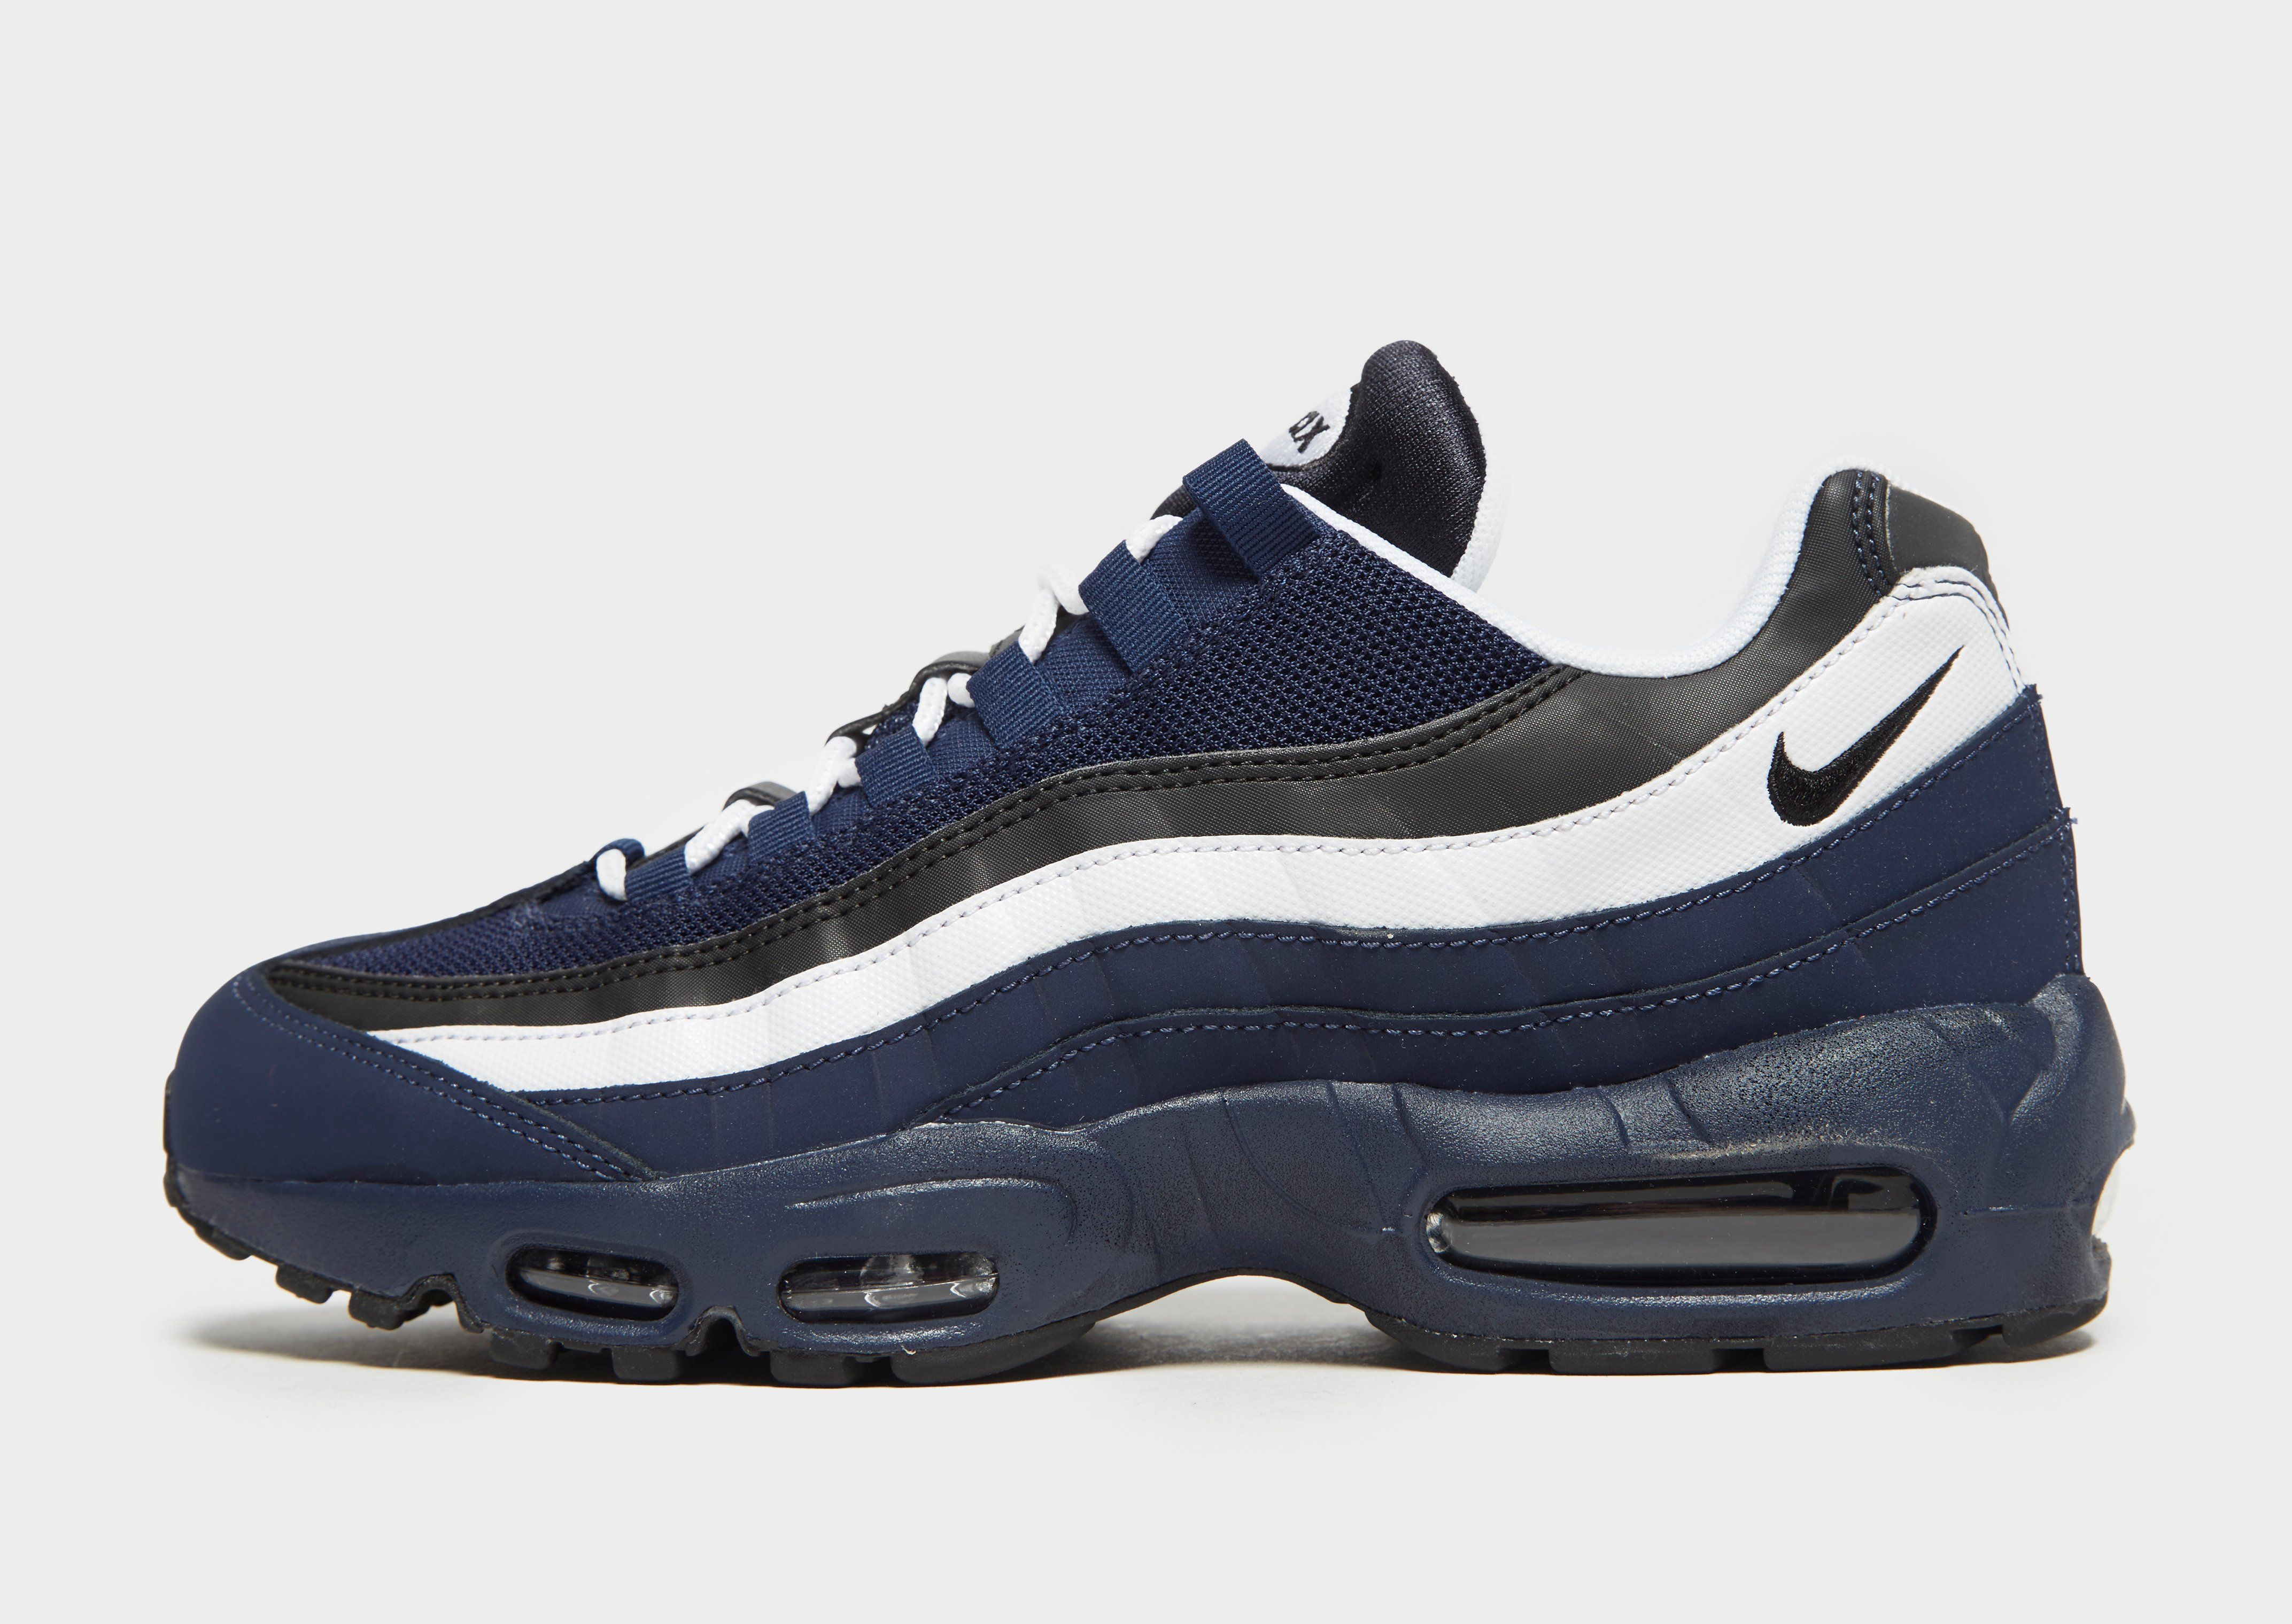 6658a3c873 Nike Air Max 95 Essential | JD Sports